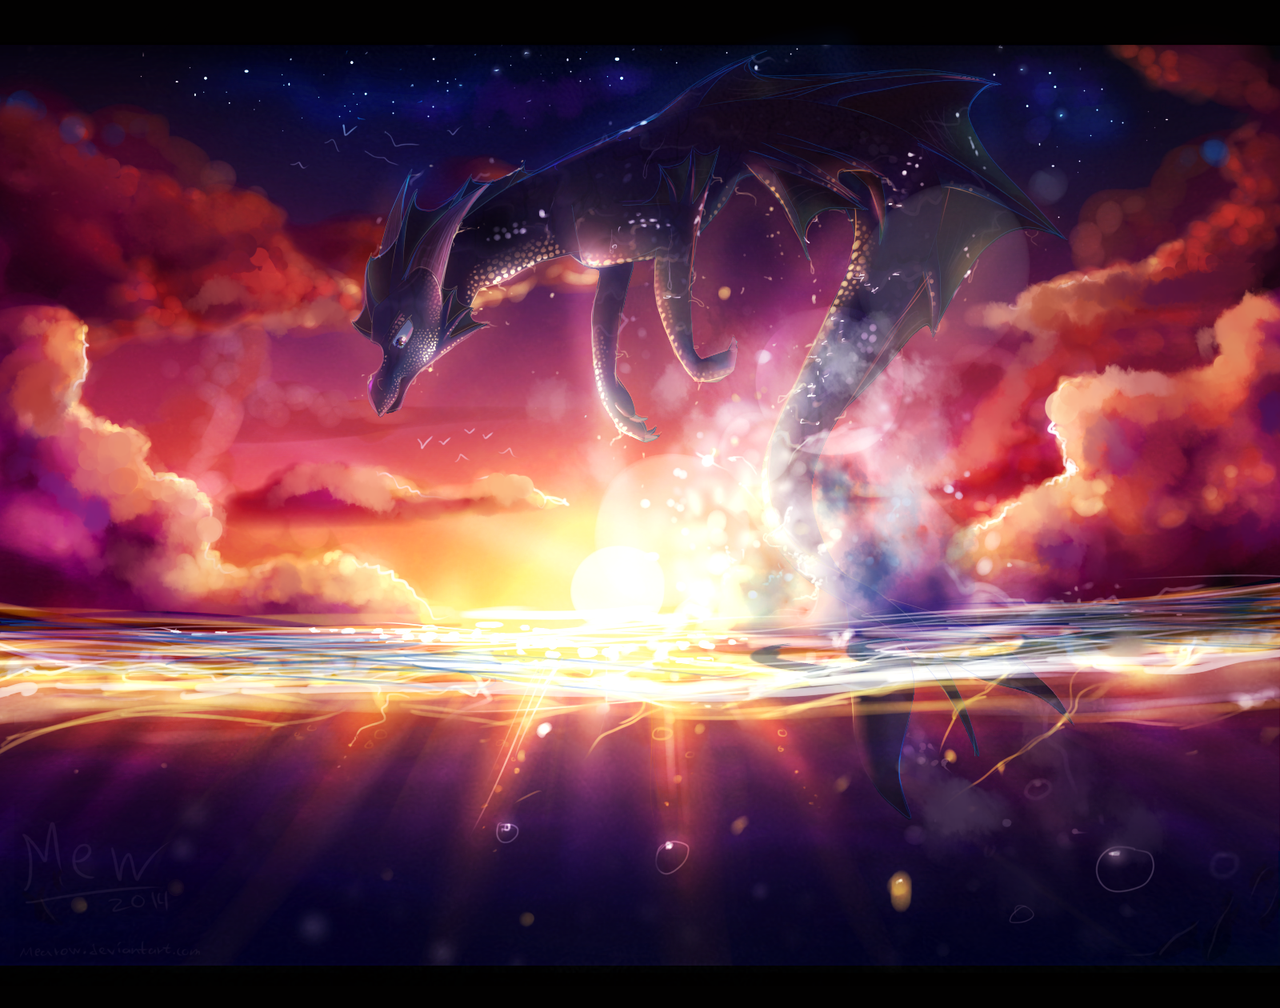 Dragon's Sunset by Dreamous on DeviantArt |Dragons And Sunsets